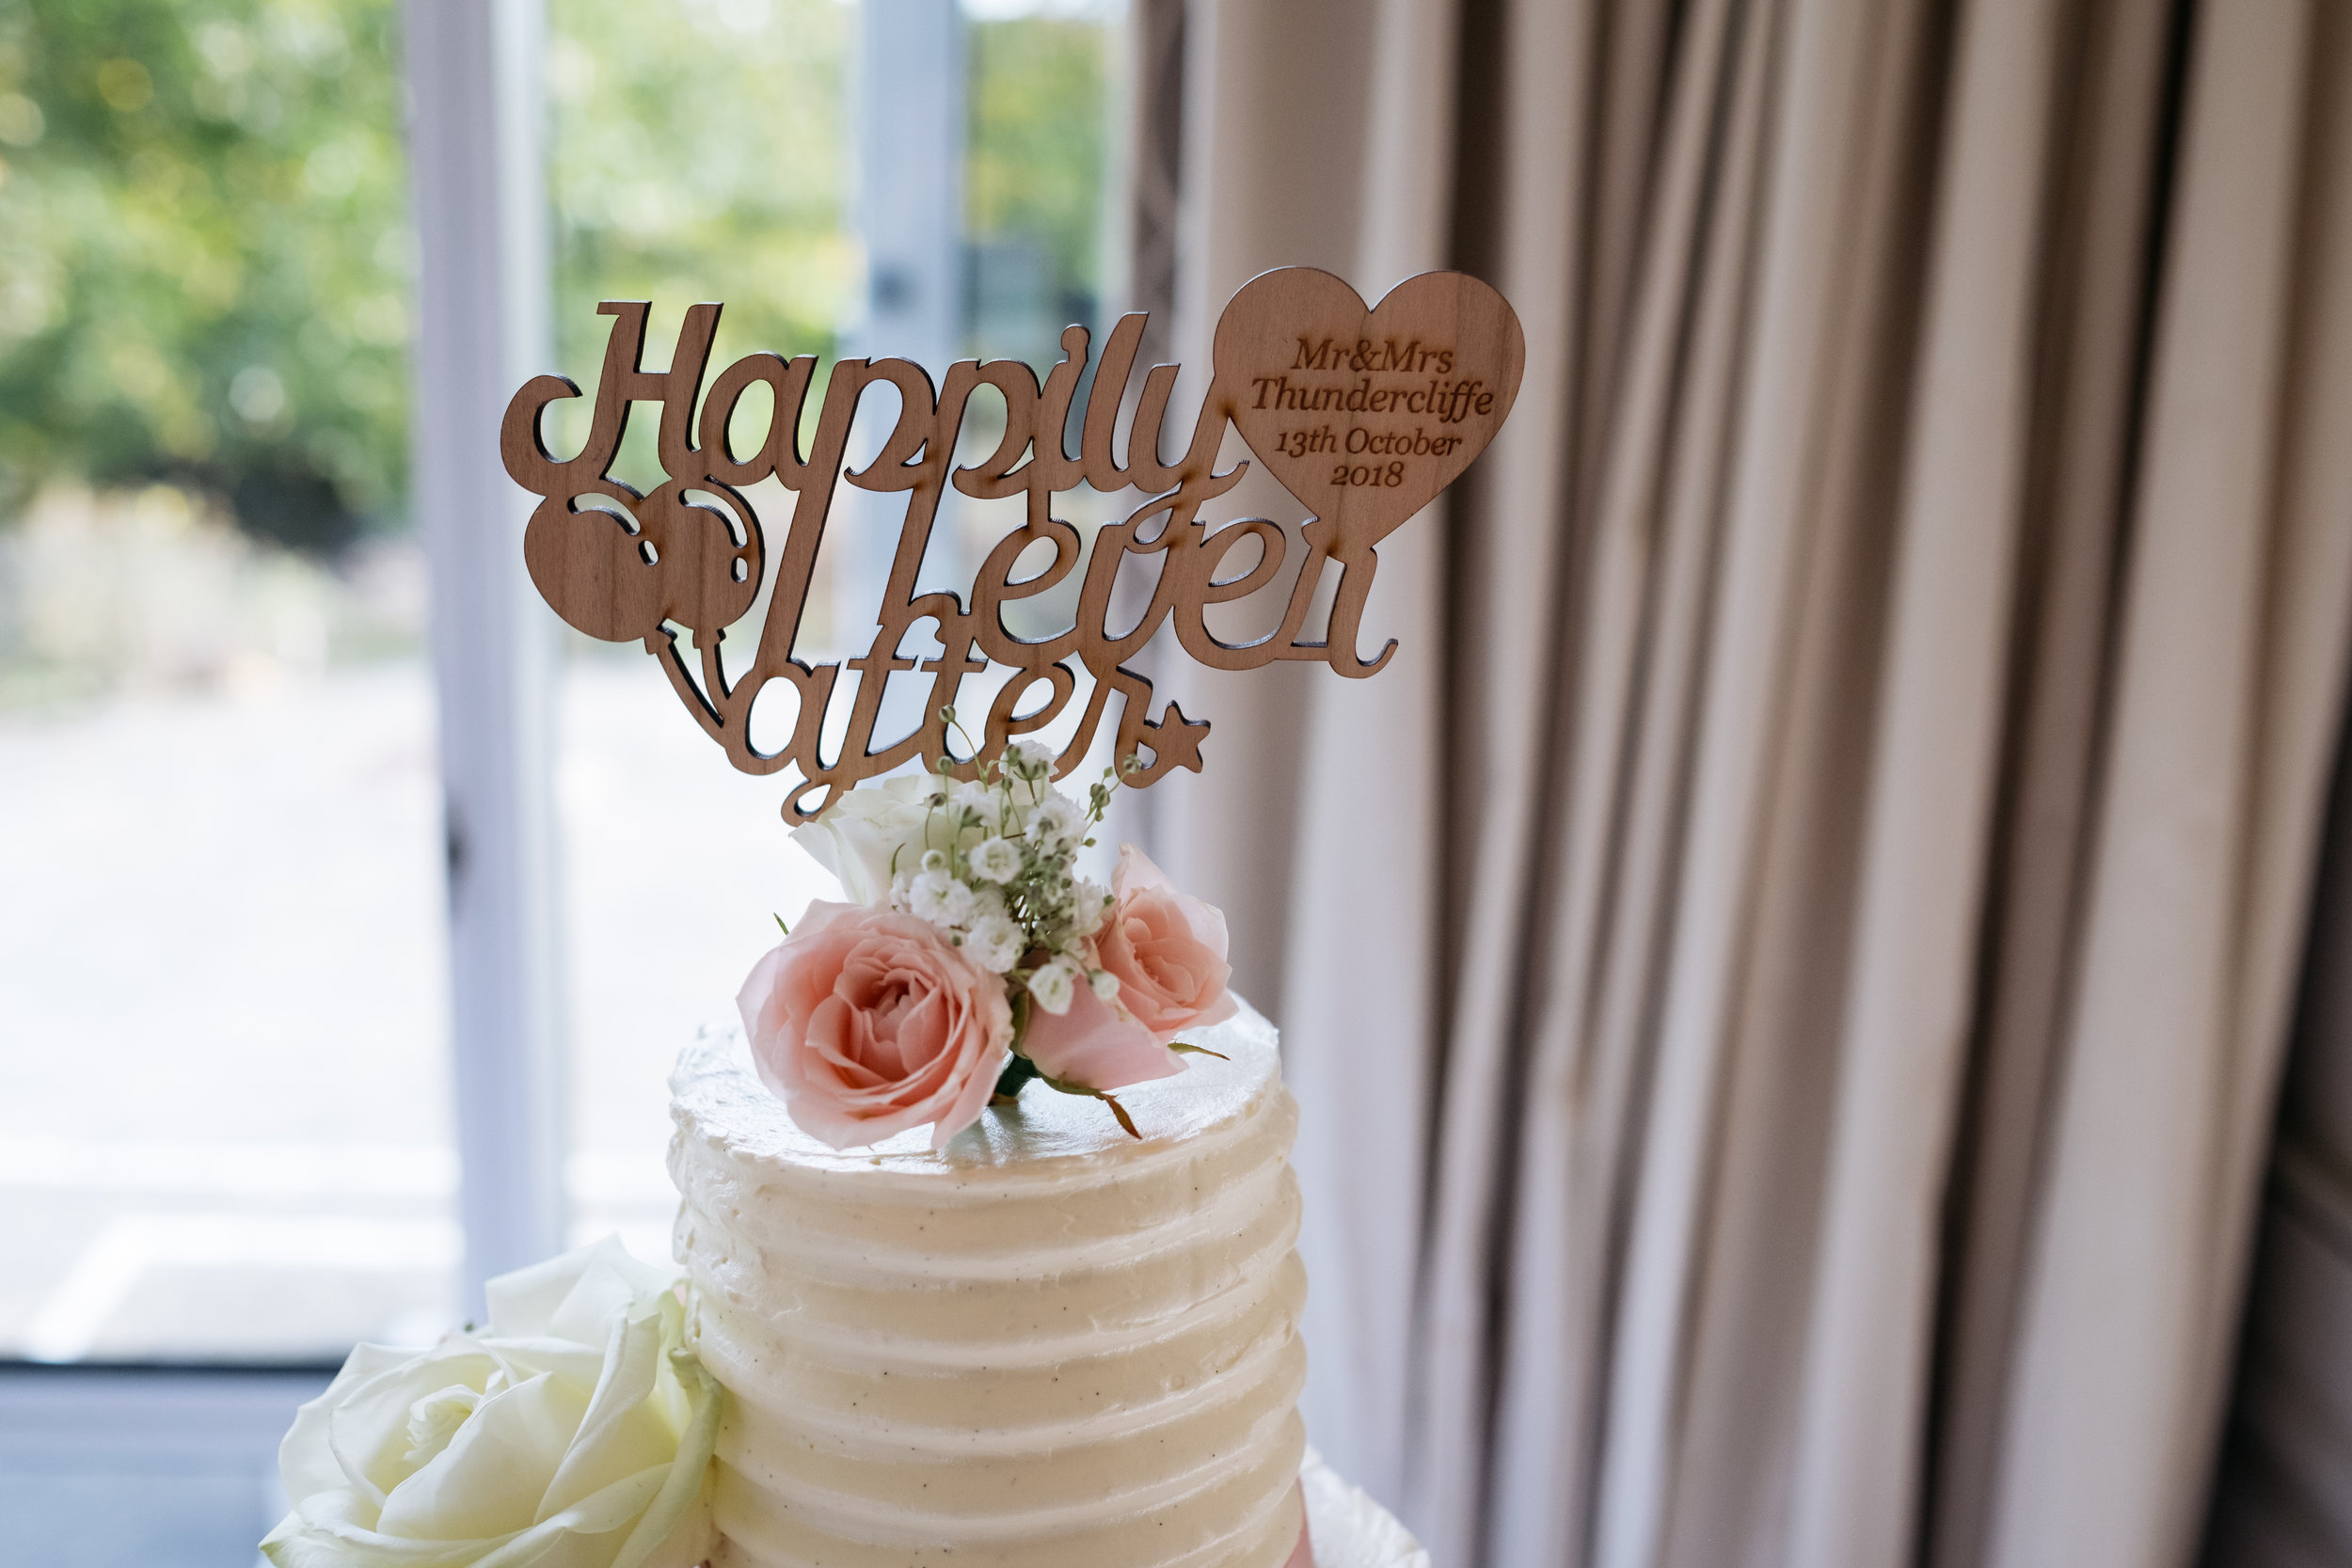 Happily ever after cake topper personalised with bride and groom's names and wedding date